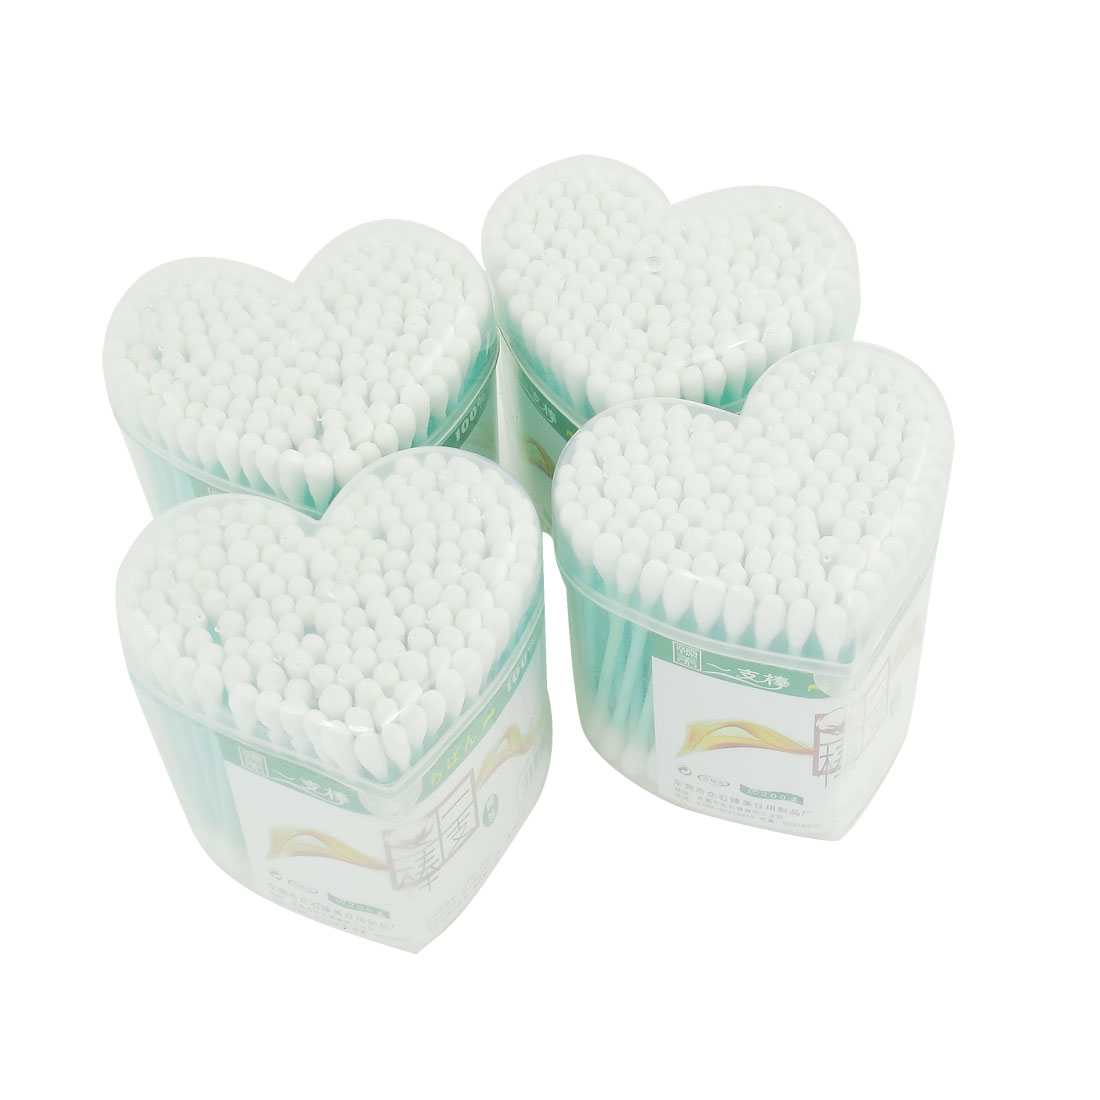 4 Packs Heart Shaped Box Double Ends Makeup Cotton Buds Swabs Swab Light Green